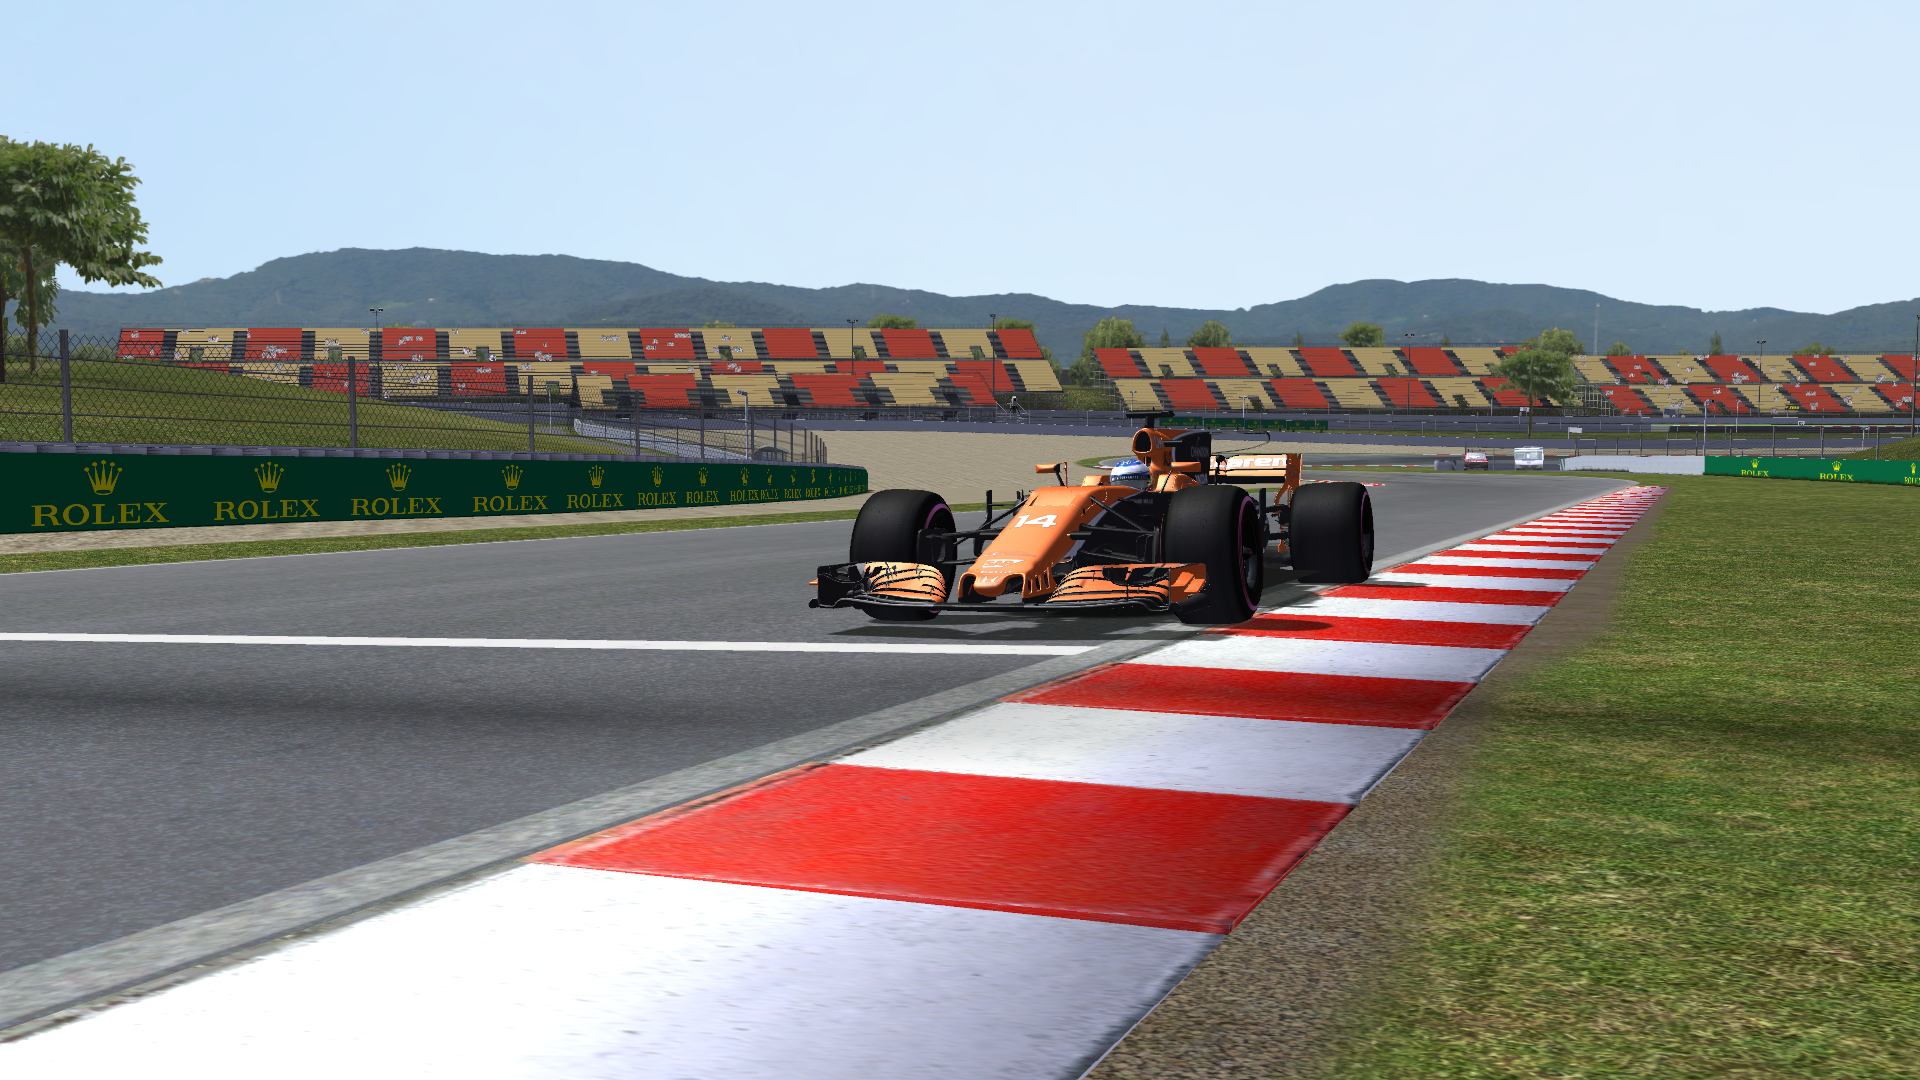 [RELEASED]F1 2017 Codemasters by Patrick34 v1.0 R_Factor_2018_04_24_08_07_54_16